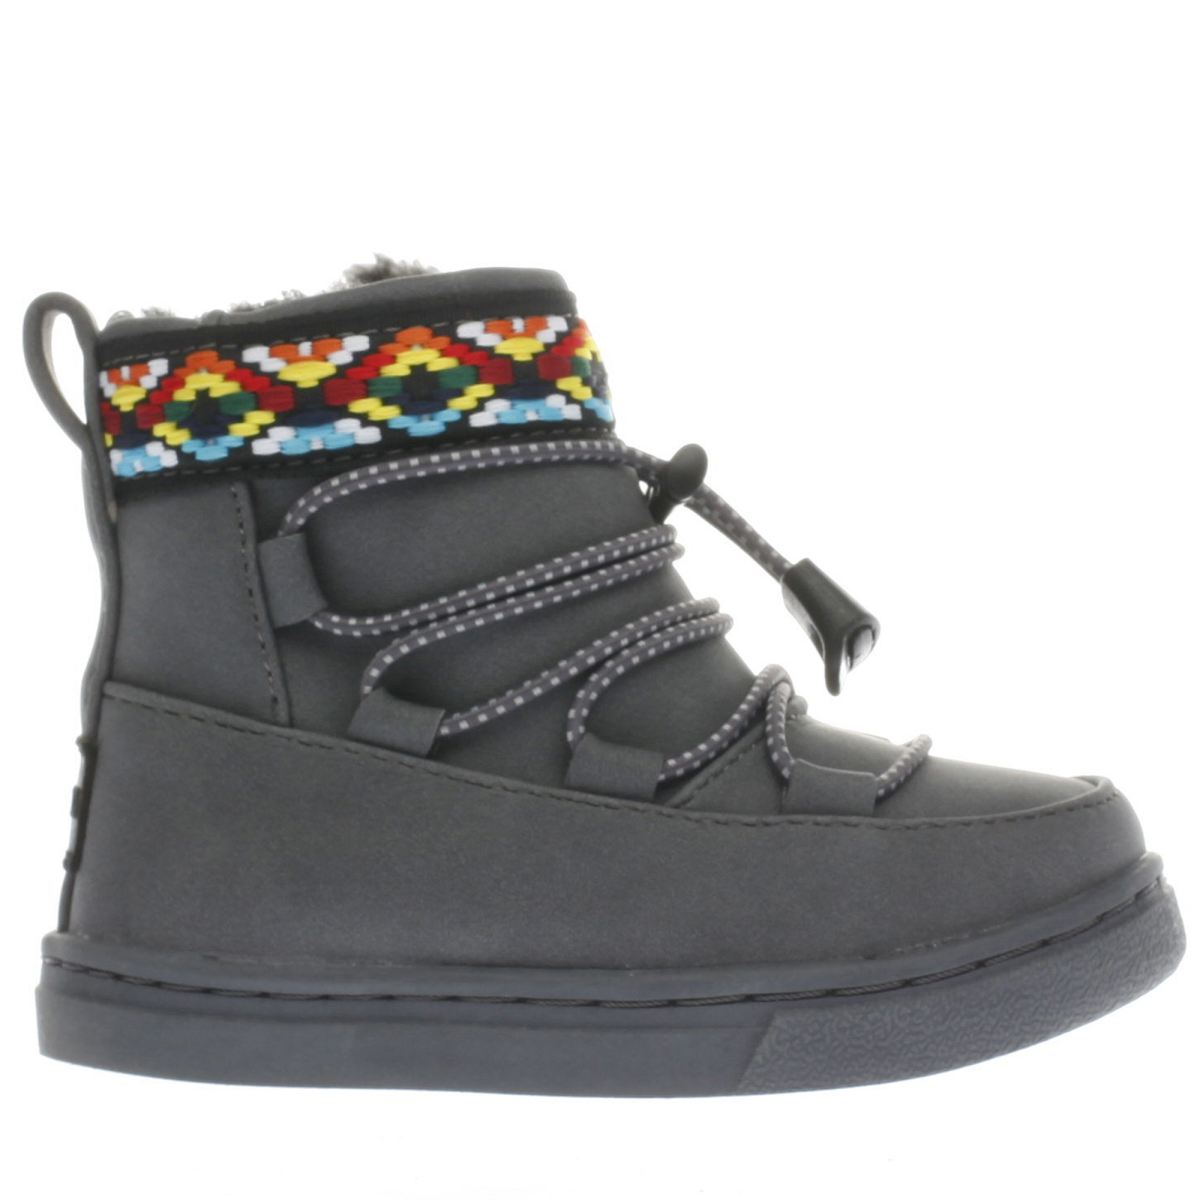 toms dark grey alpine boot Girls Toddler Boots